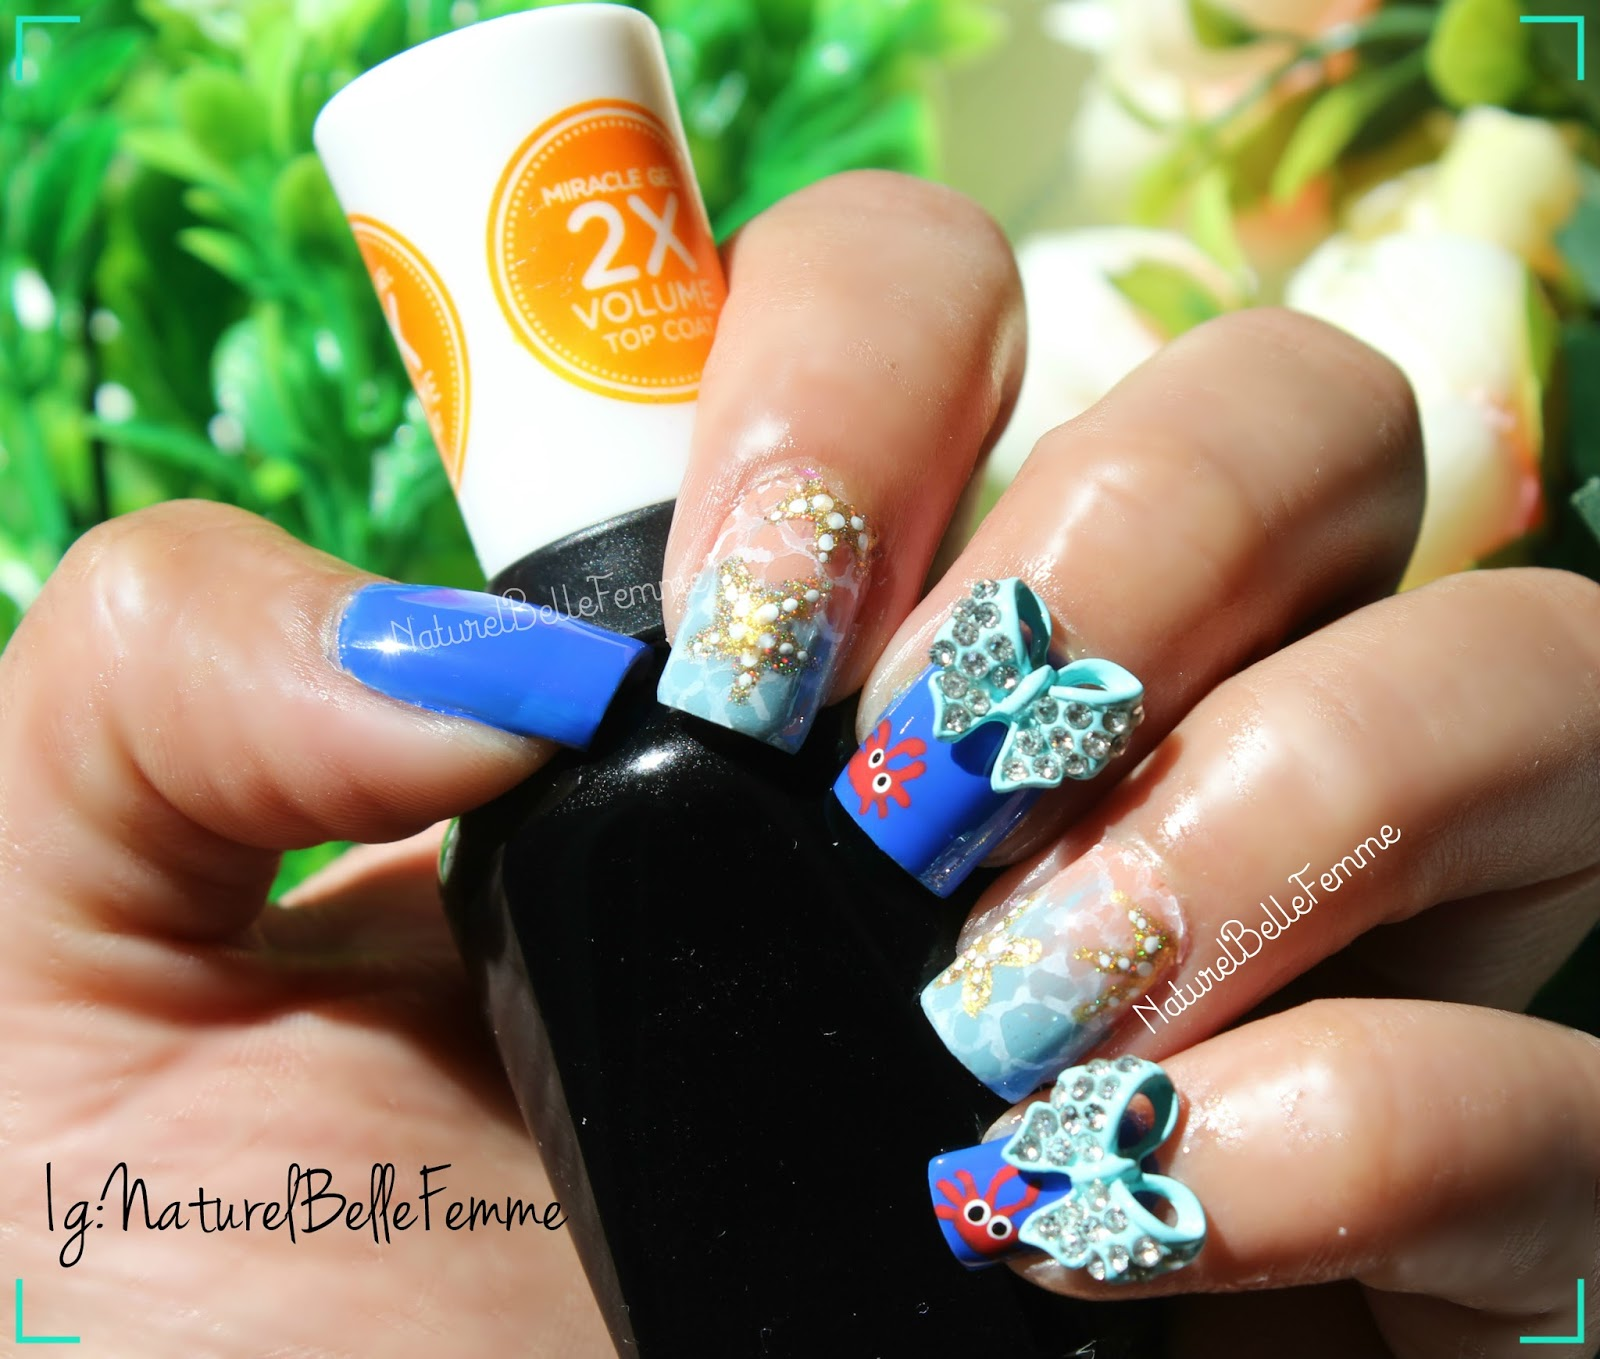 naturelbellefemme: Starfish nail art